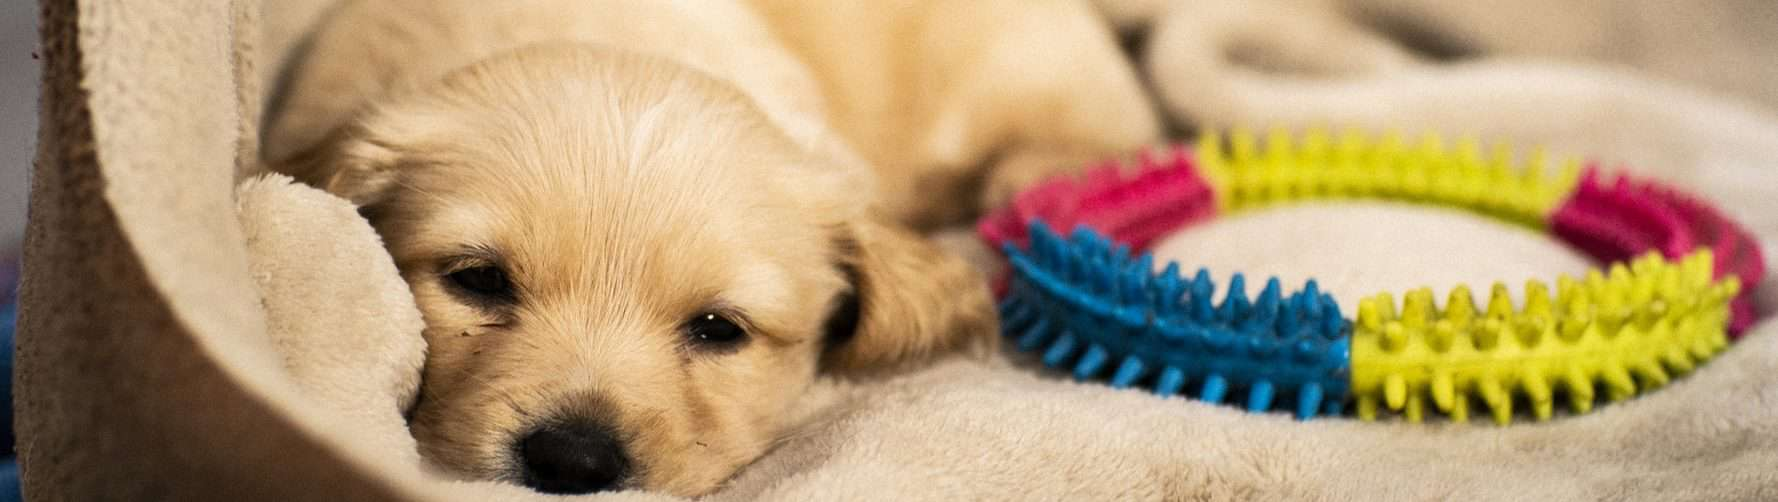 Puppy in bed with a toy beside him